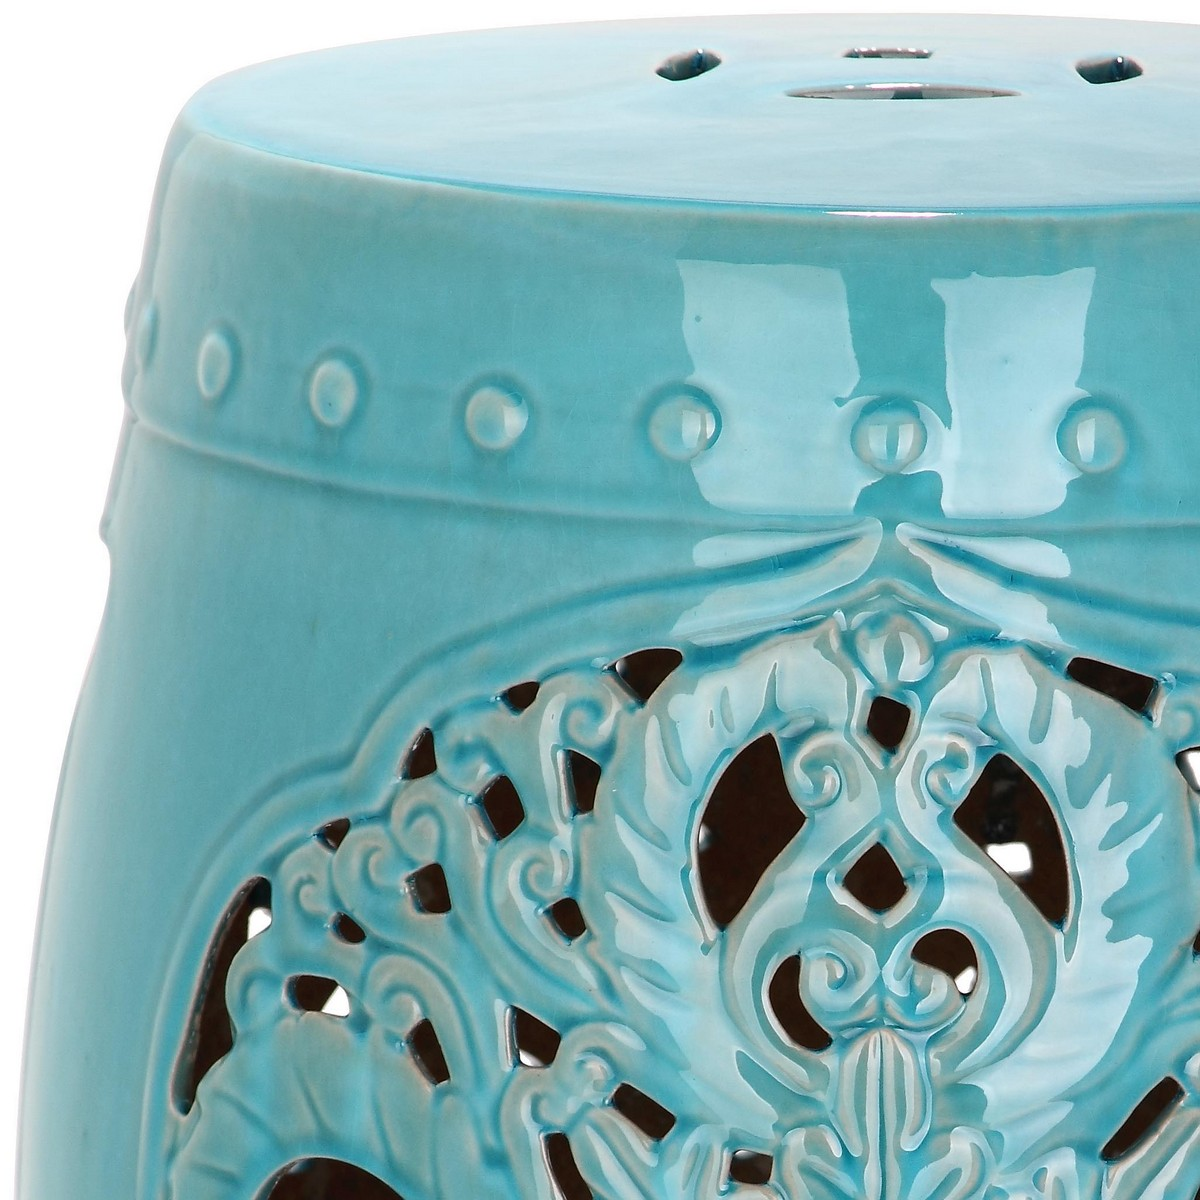 Exquisitely Crafted, The Flora Indoor Outdoor Ceramic Garden Stool In Light  Blue Features A Pierced Leaf Medallion Motif Of Asian Inspiration.